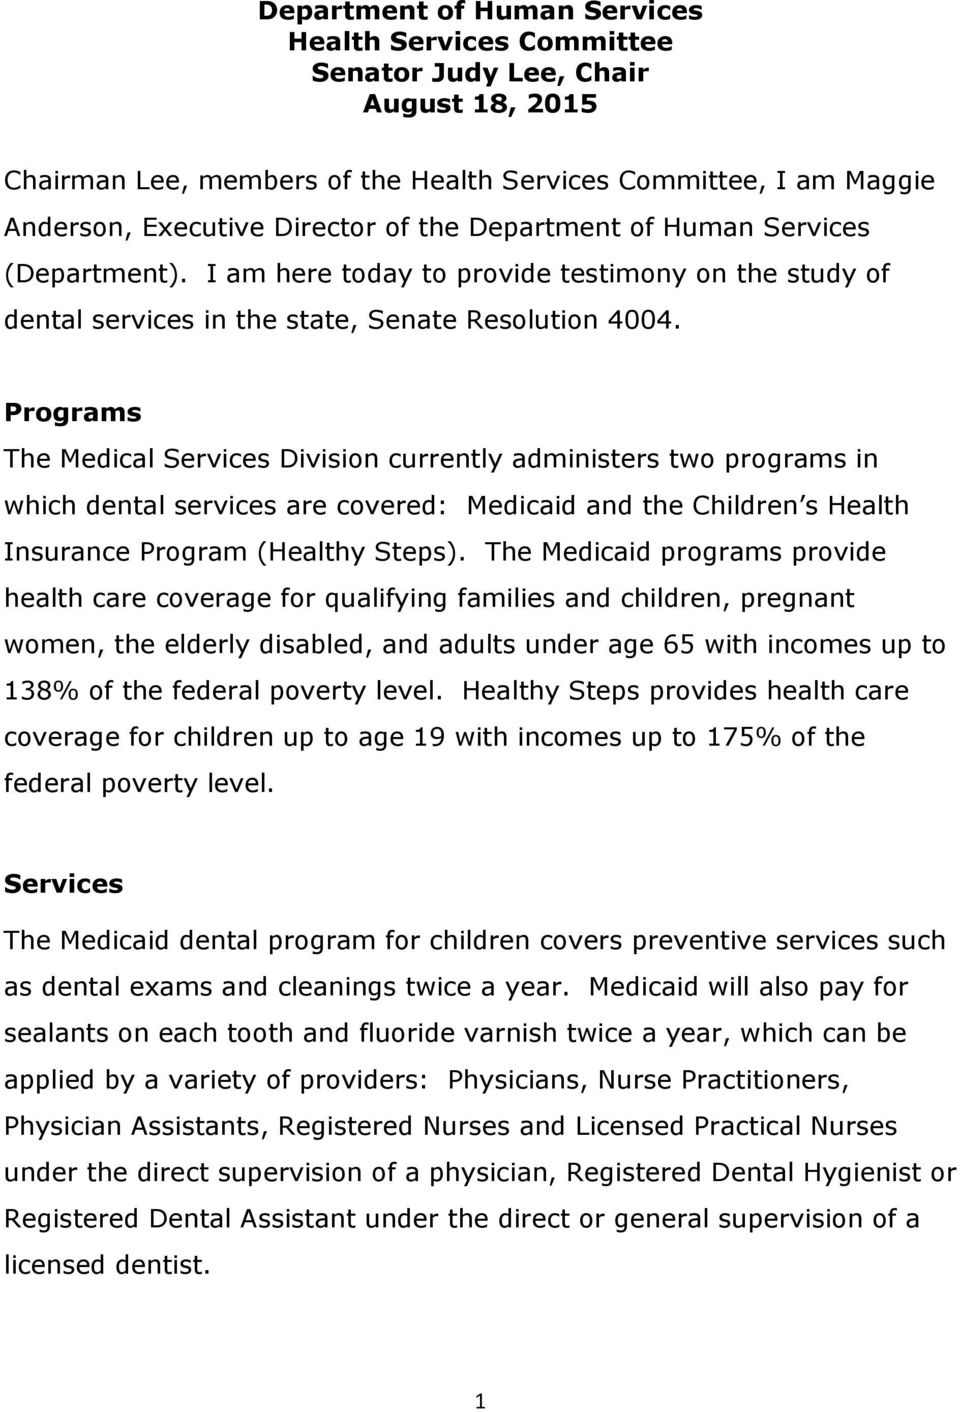 Programs The Medical Services Division currently administers two programs in which dental services are covered: Medicaid and the Children s Health Insurance Program (Healthy Steps).